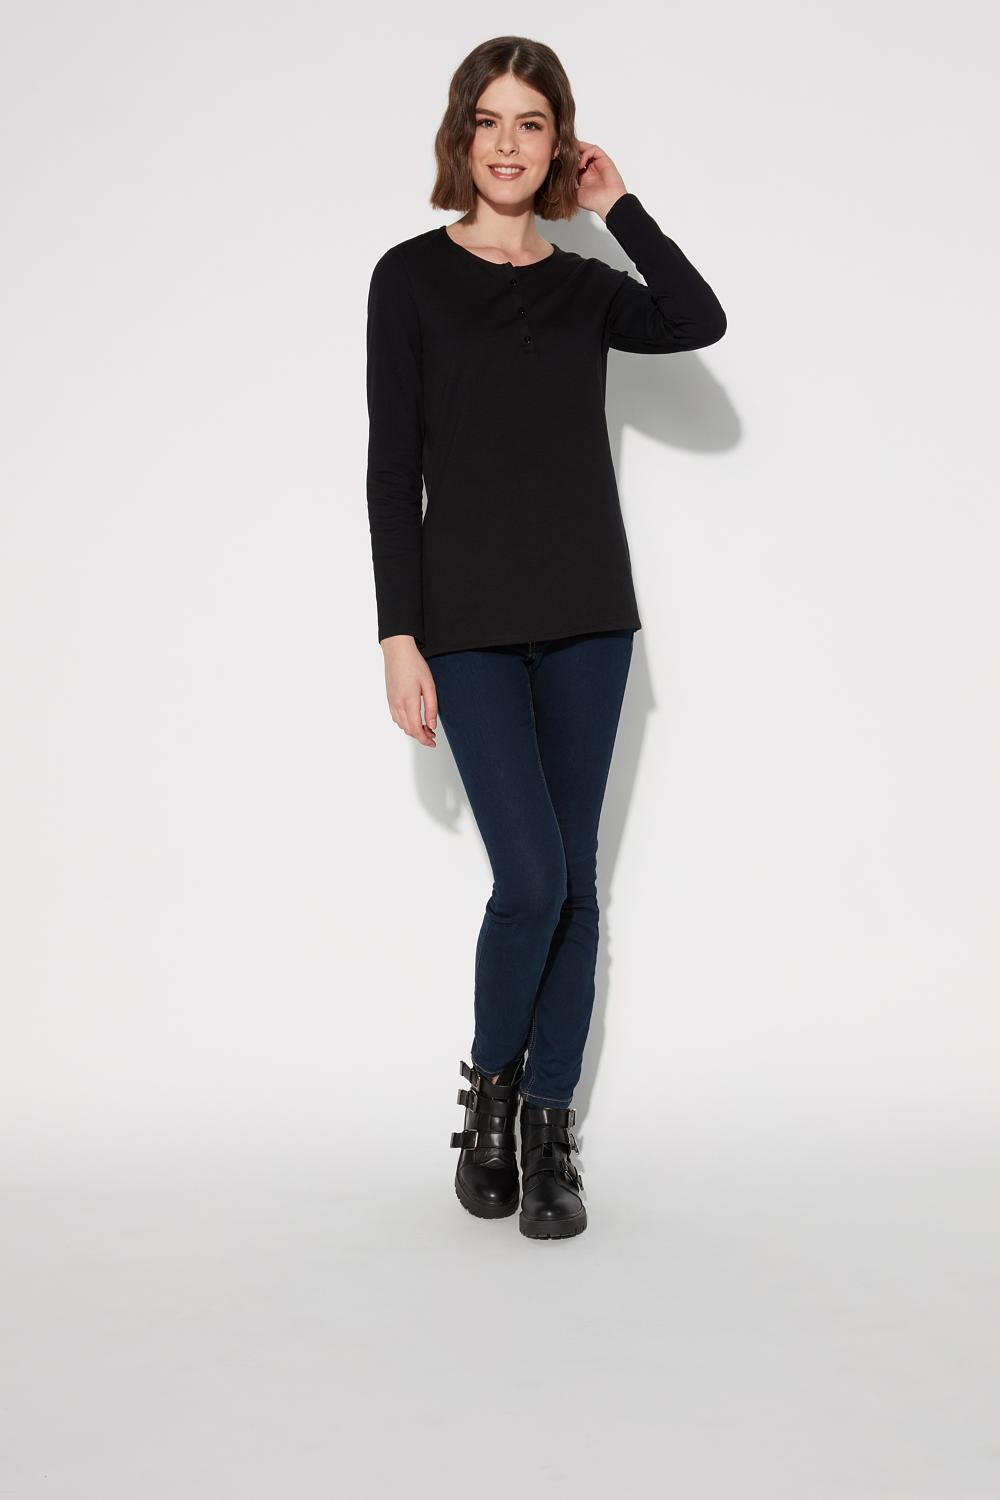 Long-Sleeved Thermal Cotton Grandad Top